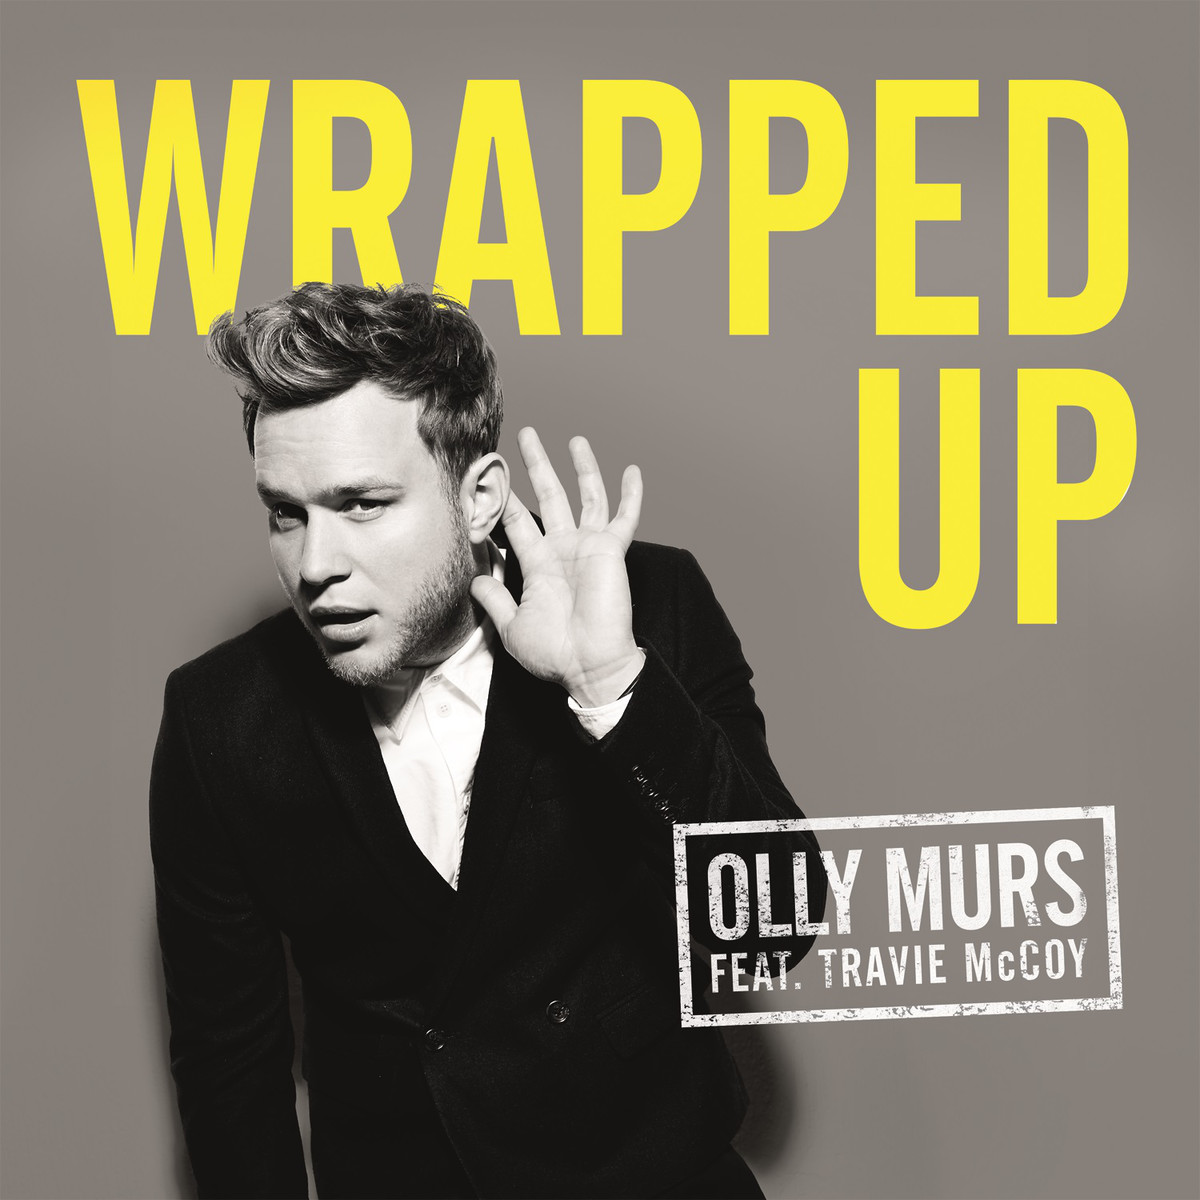 olly murs wrapped up feat travie mccoy music video